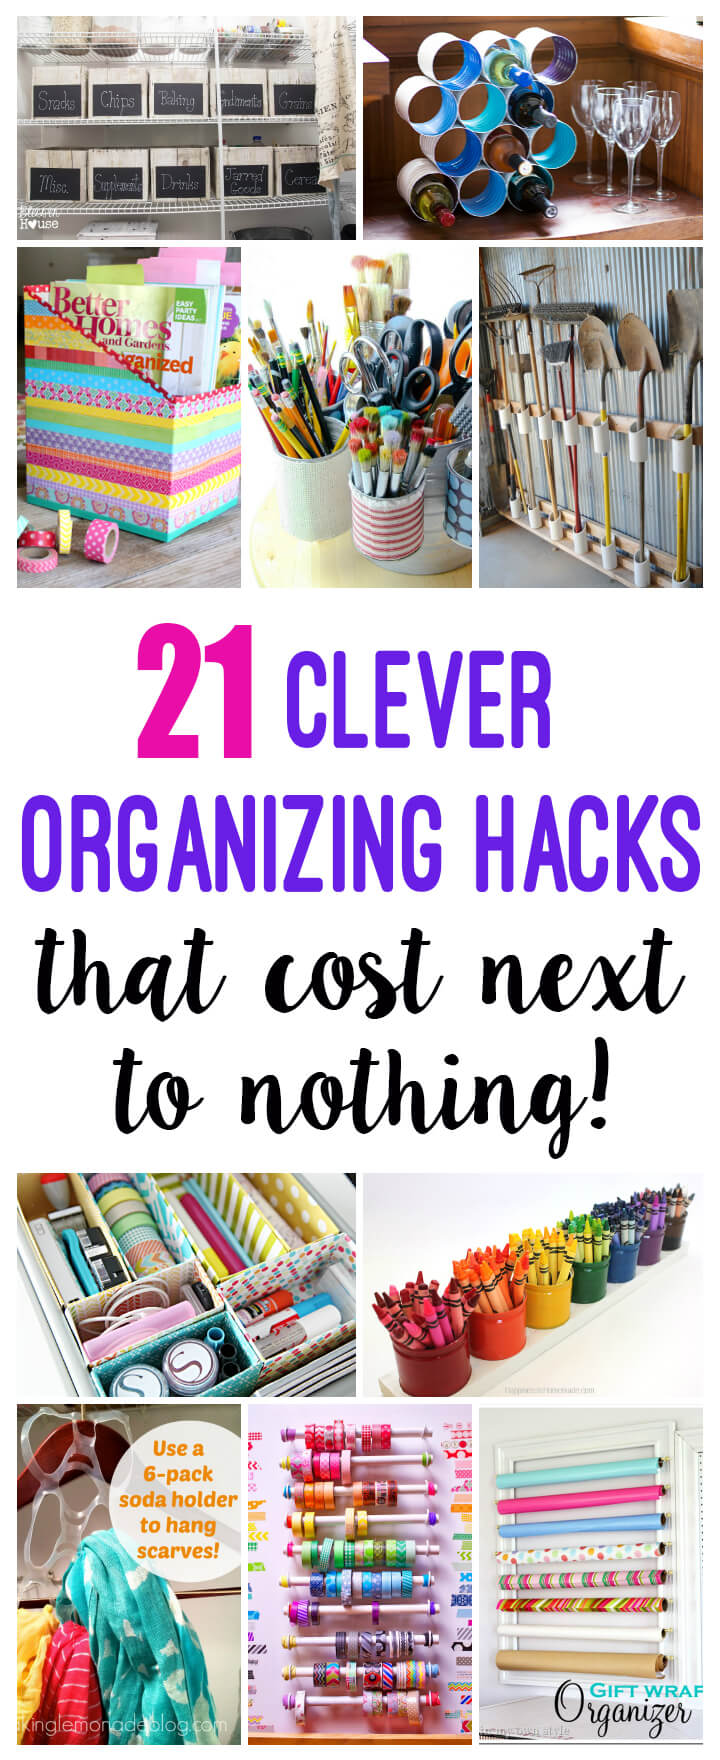 21 Clever Organization Hacks and Storage Solutions That Cost Next to Nothing